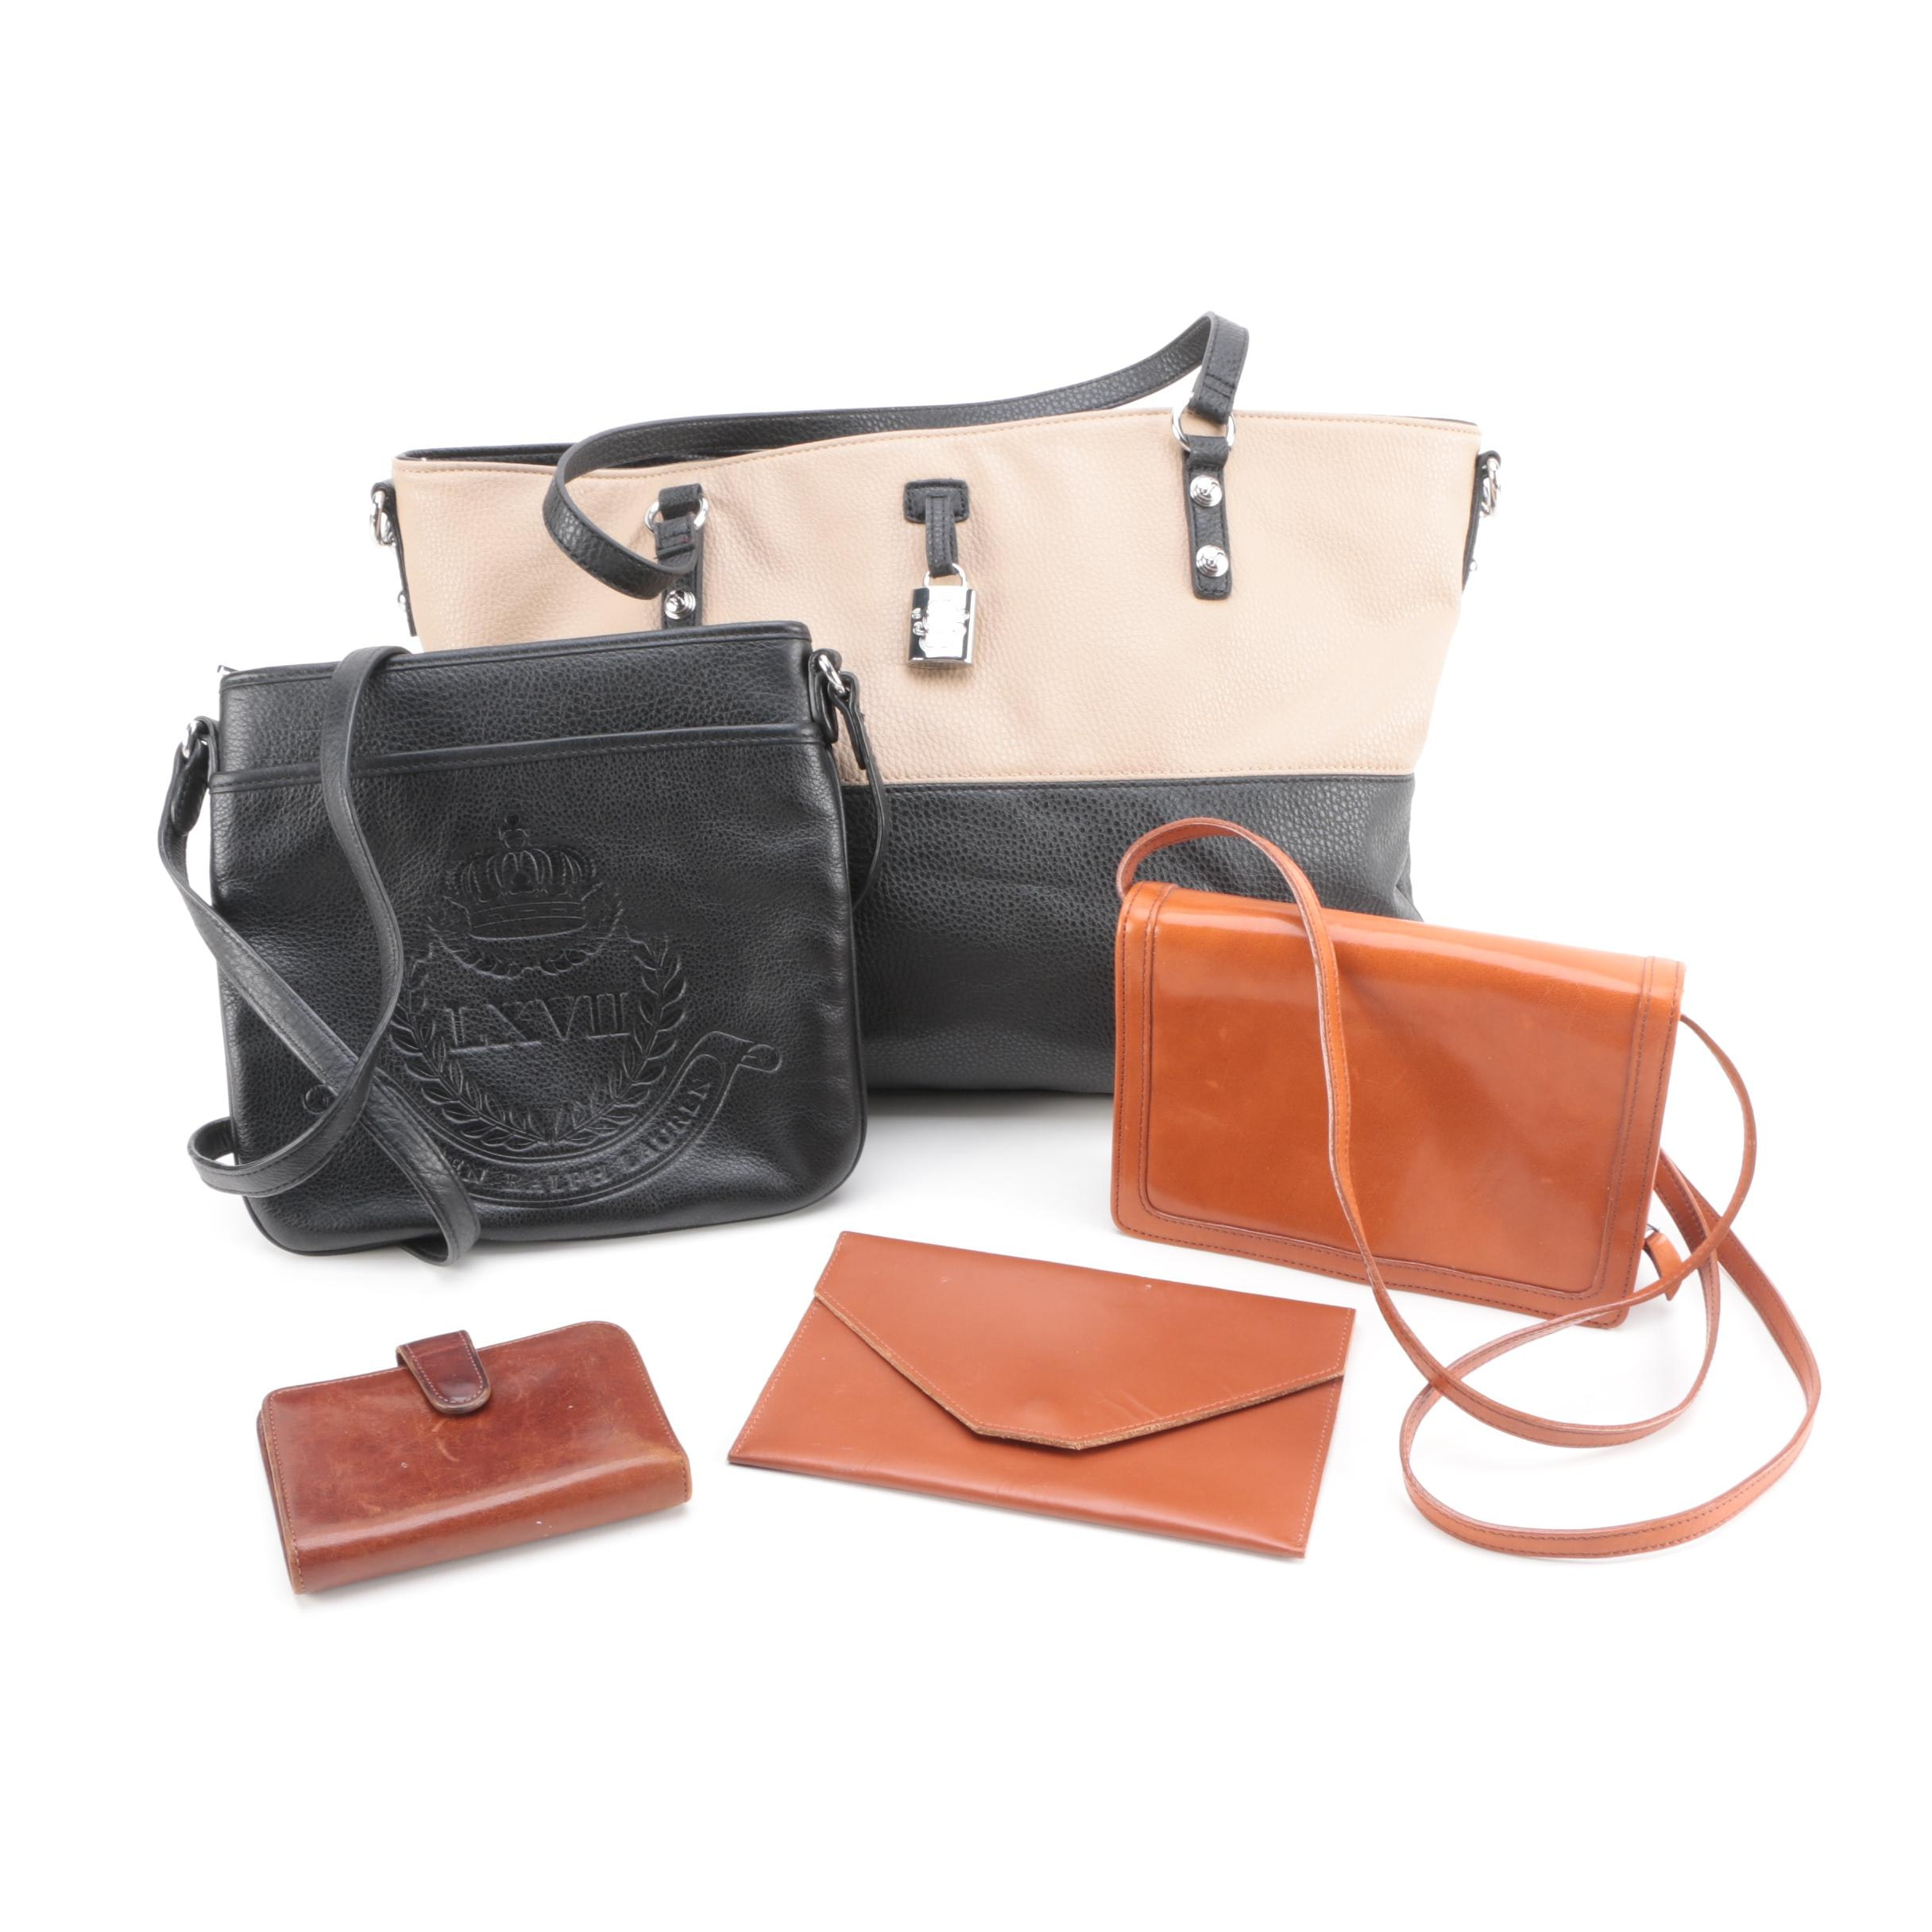 Leather Handbag, Wallet, Portfolio and Wristlet Assortment